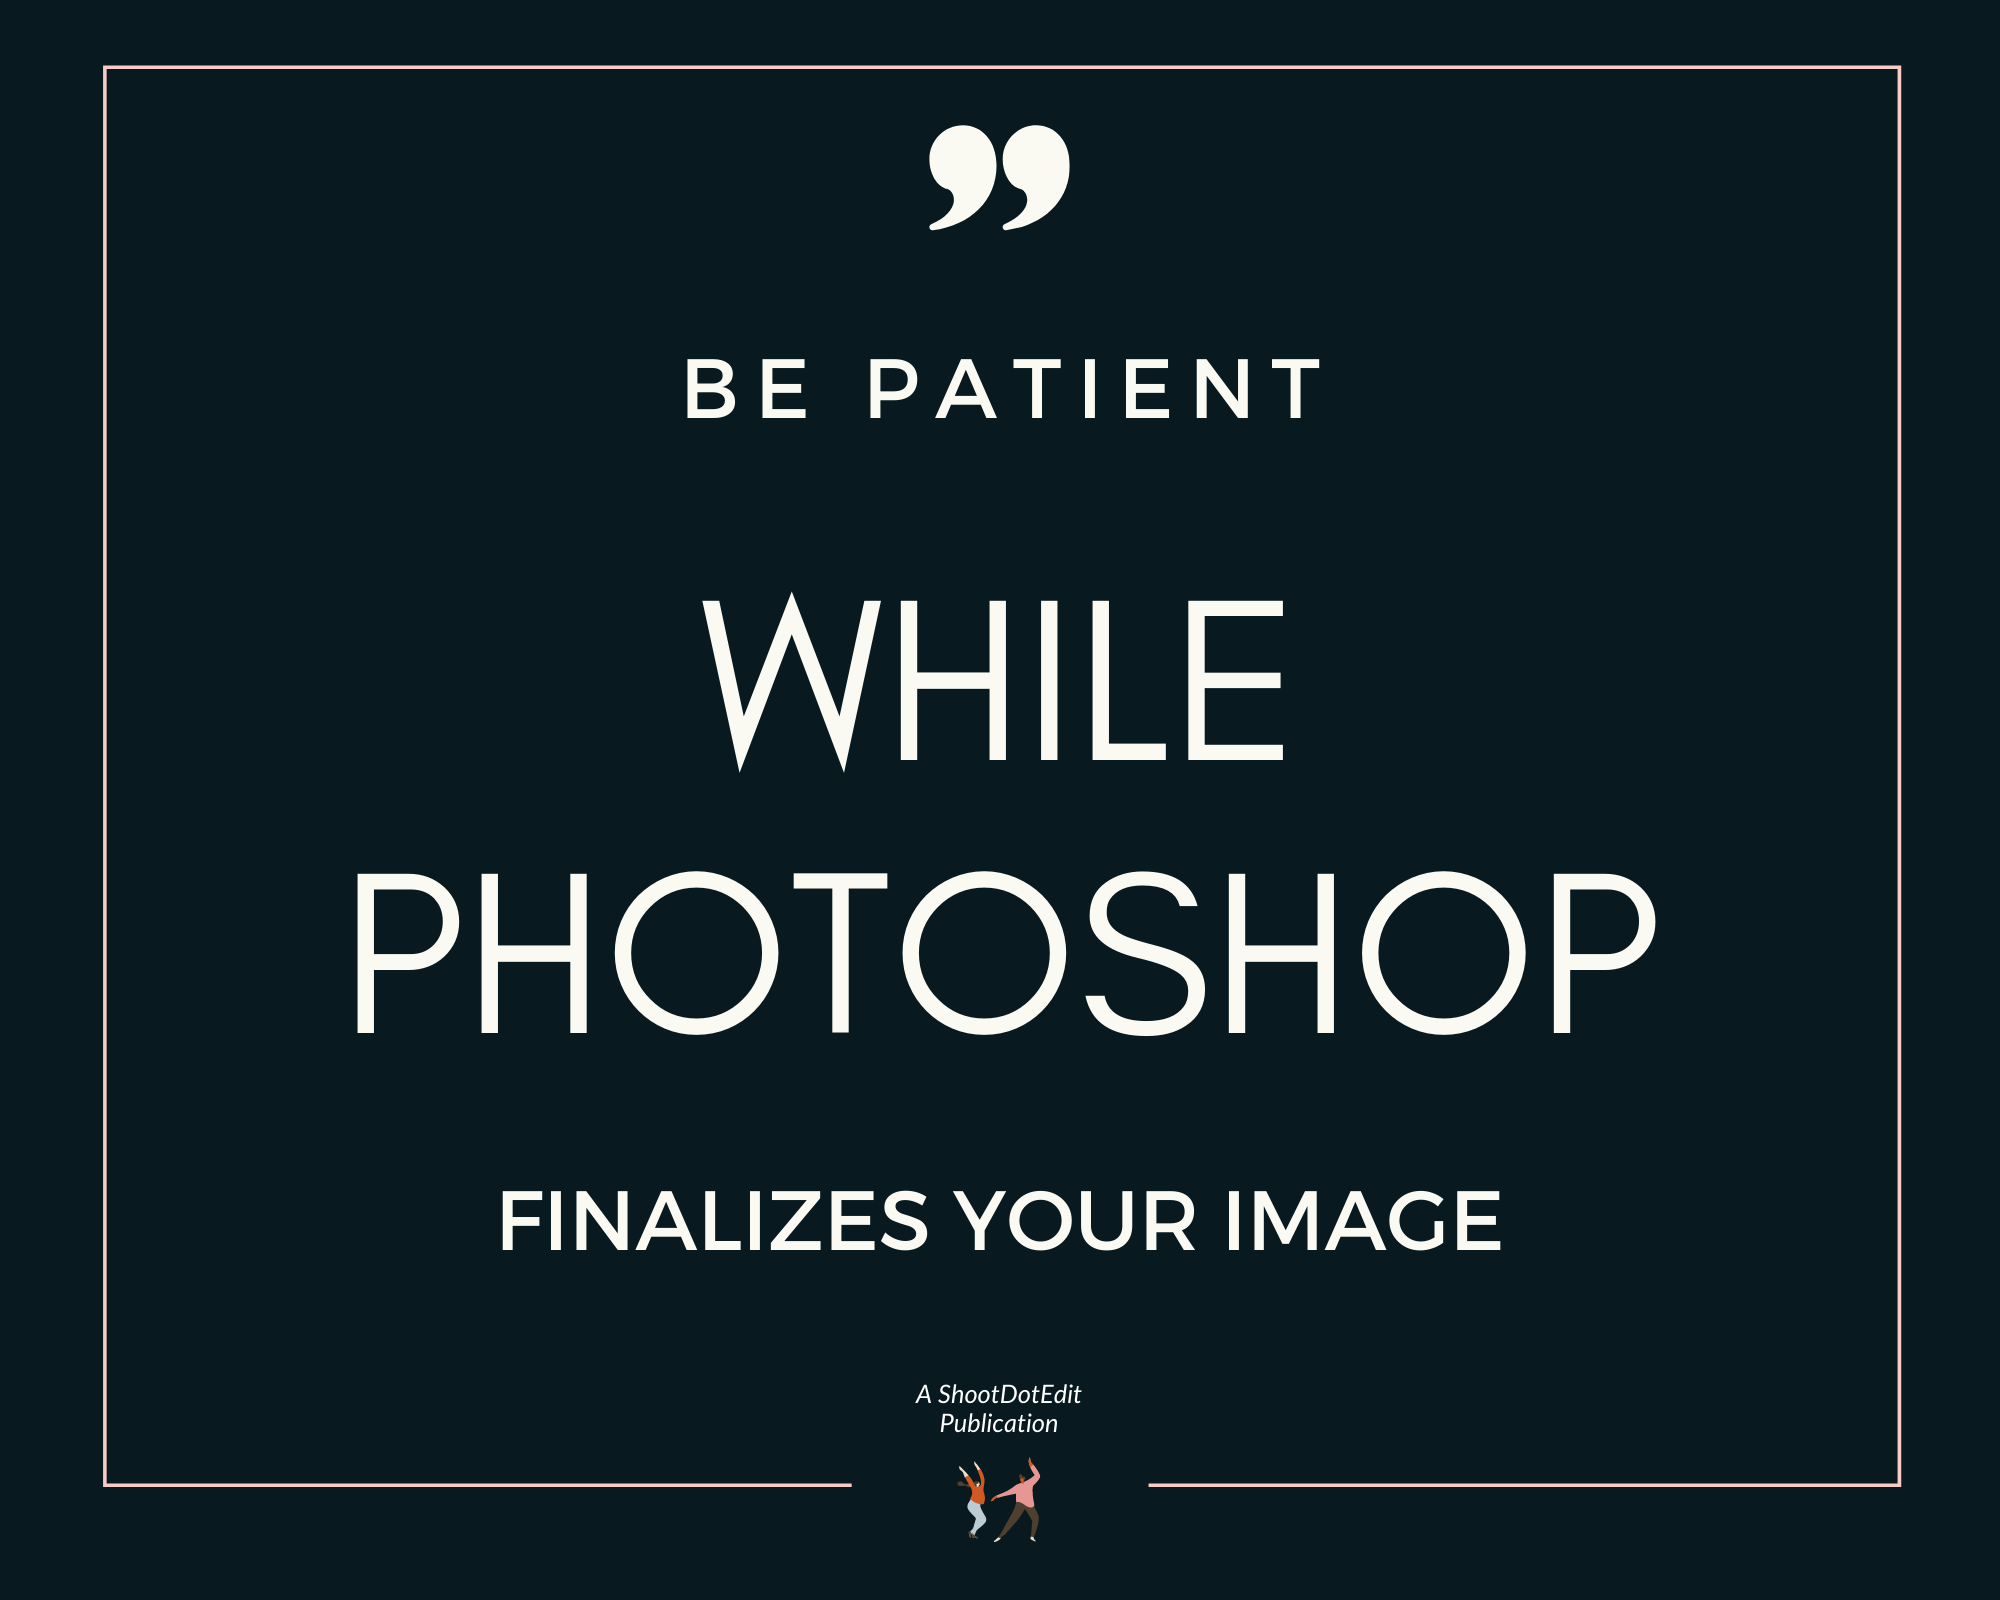 Infographic stating be patient while Photoshop finalizes your image